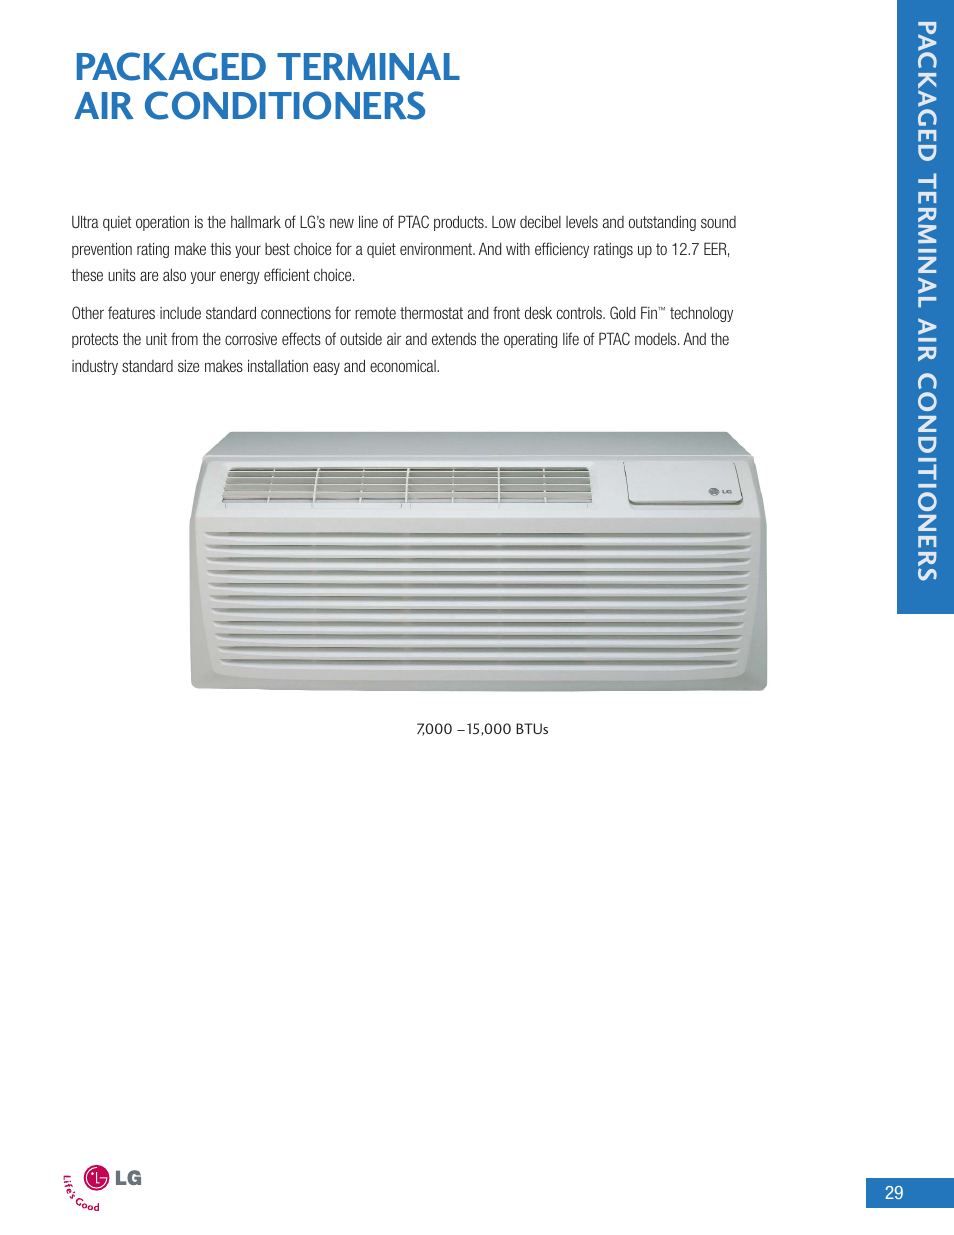 Packaged terminal air conditioners, Pa cka ged terminal air conditioner s |  LG LA090HP User